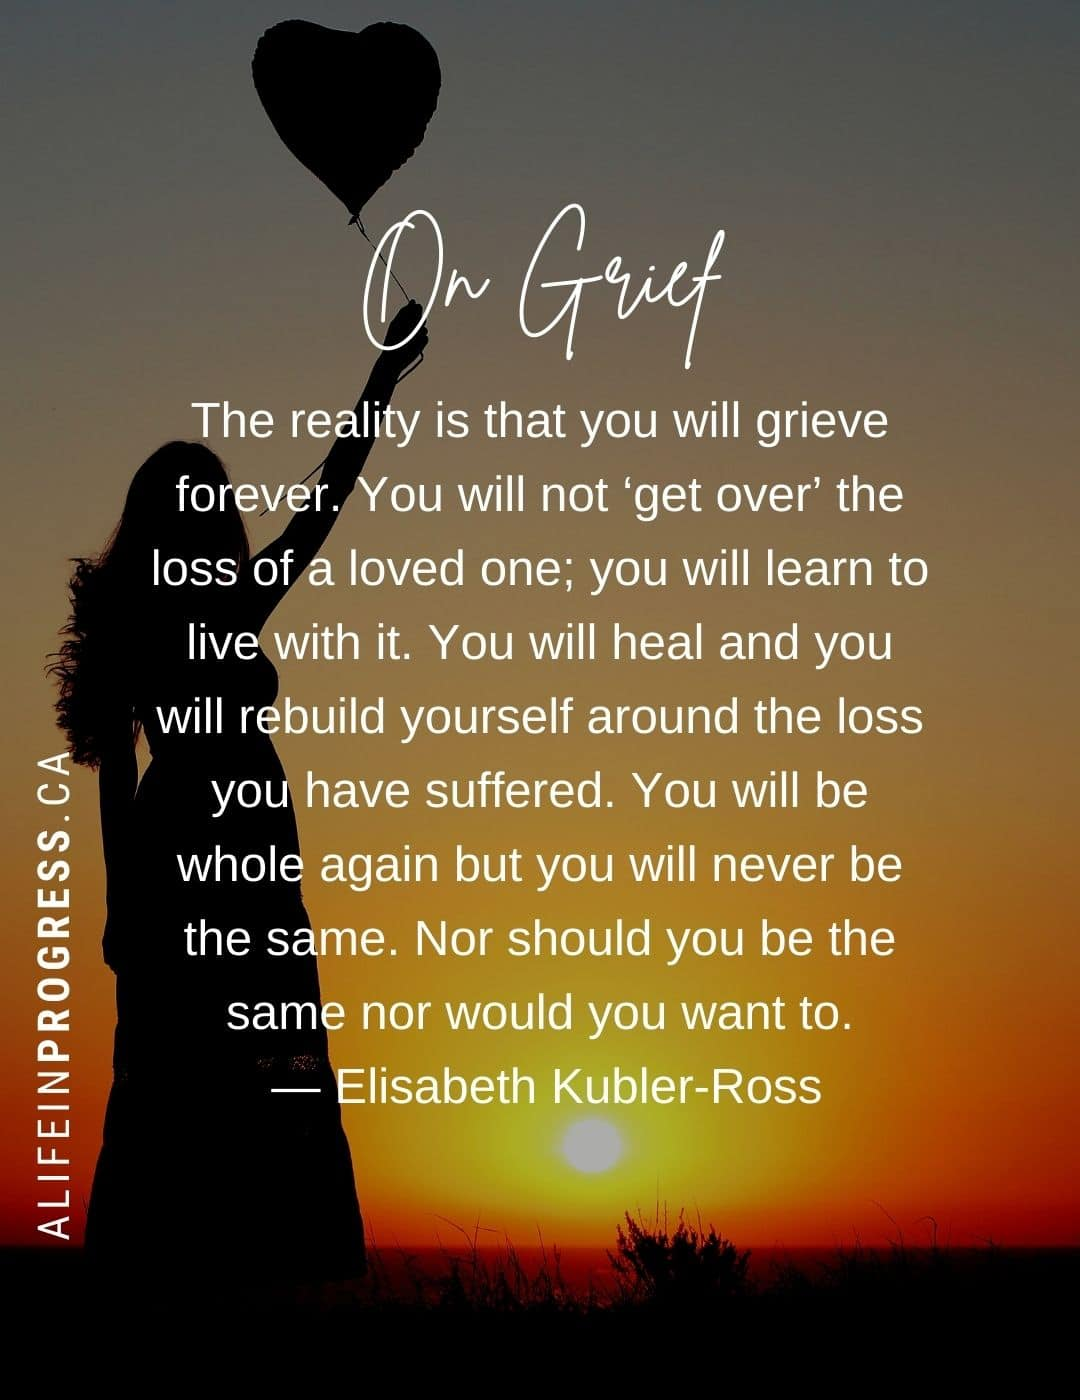 On Grief: you will never get over the loss of a loved one. You will heal and you will rebuild yourself around the loss you have suffered but you will never be the same.